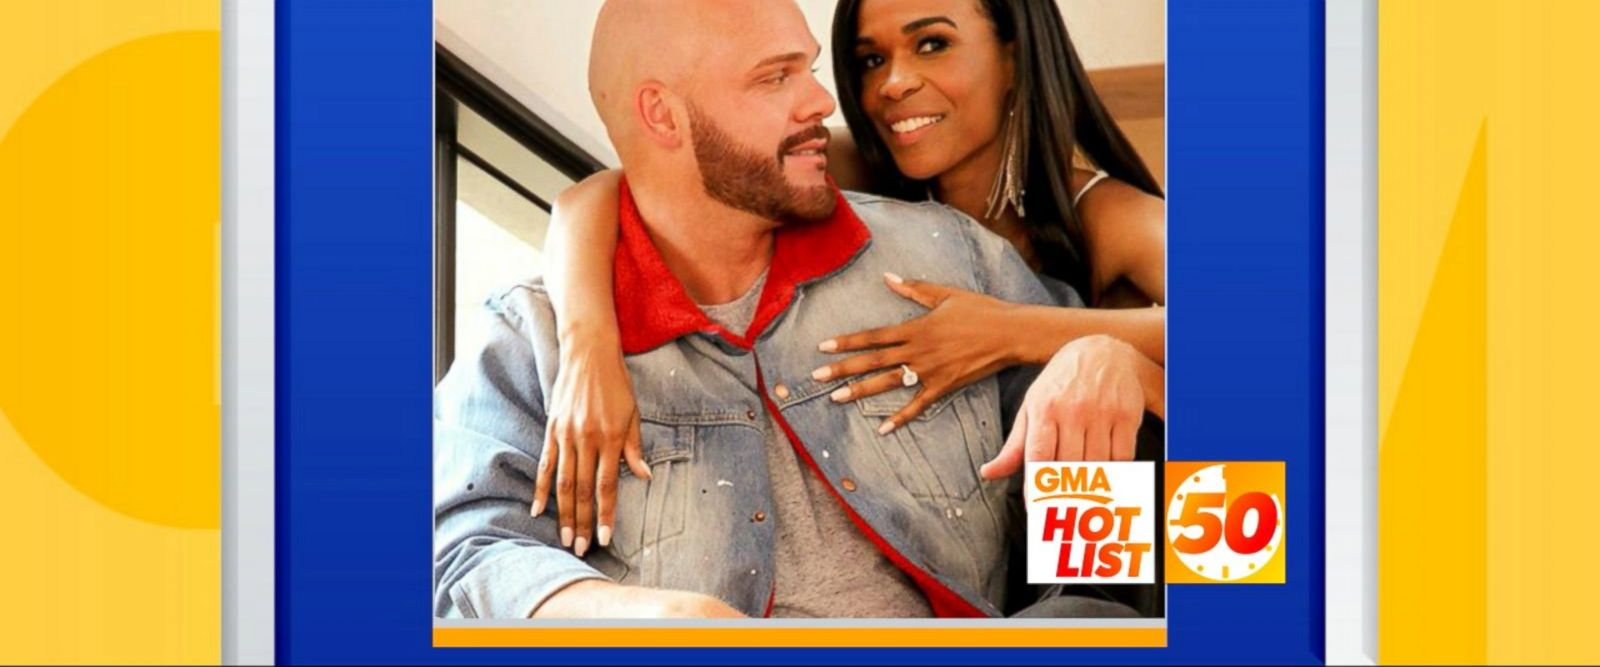 VIDEO: 'GMA' Hot List: Michelle Williams opens up about how she became engaged